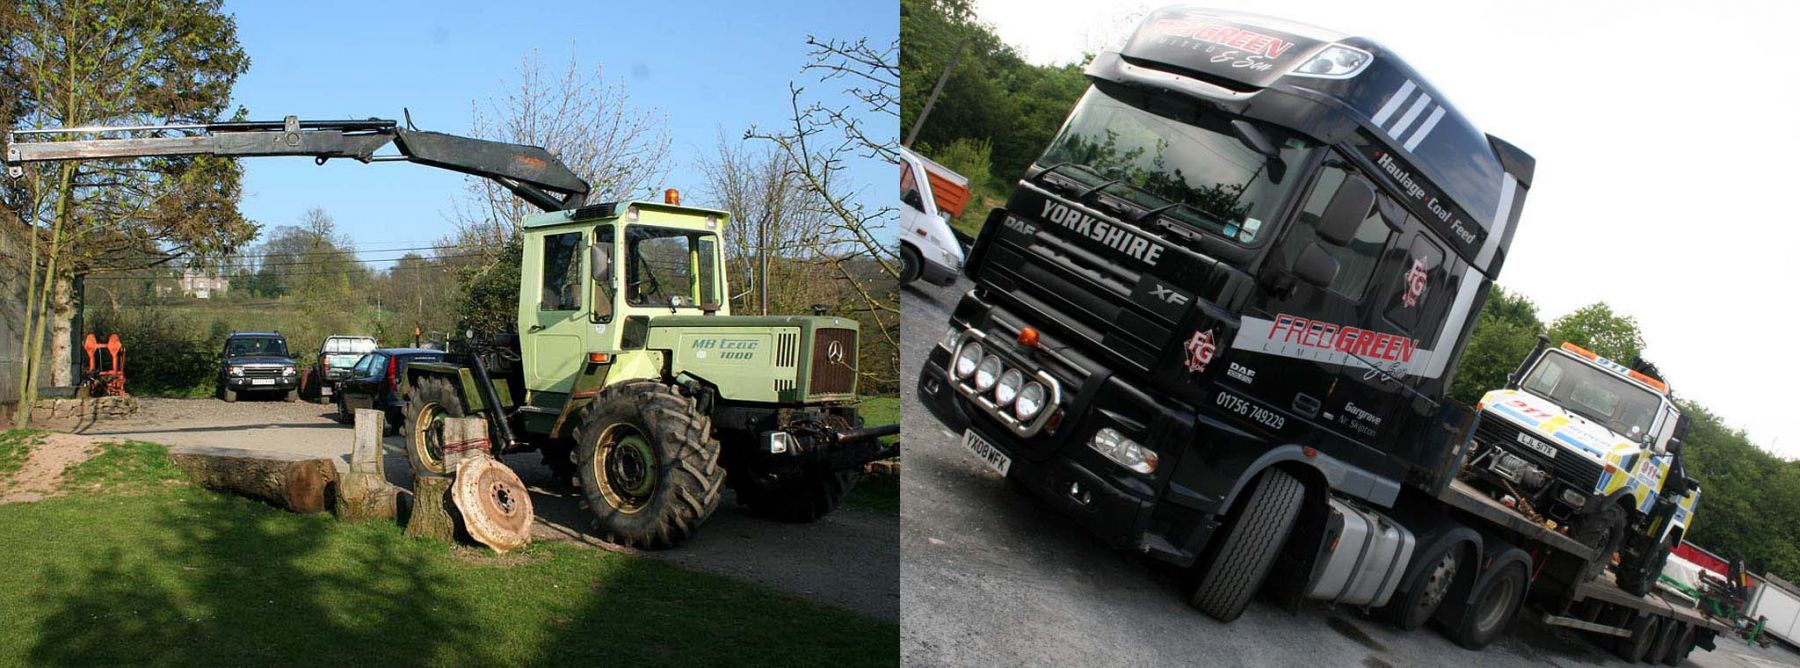 Mb Trac Trade-in for a Unimog U1000